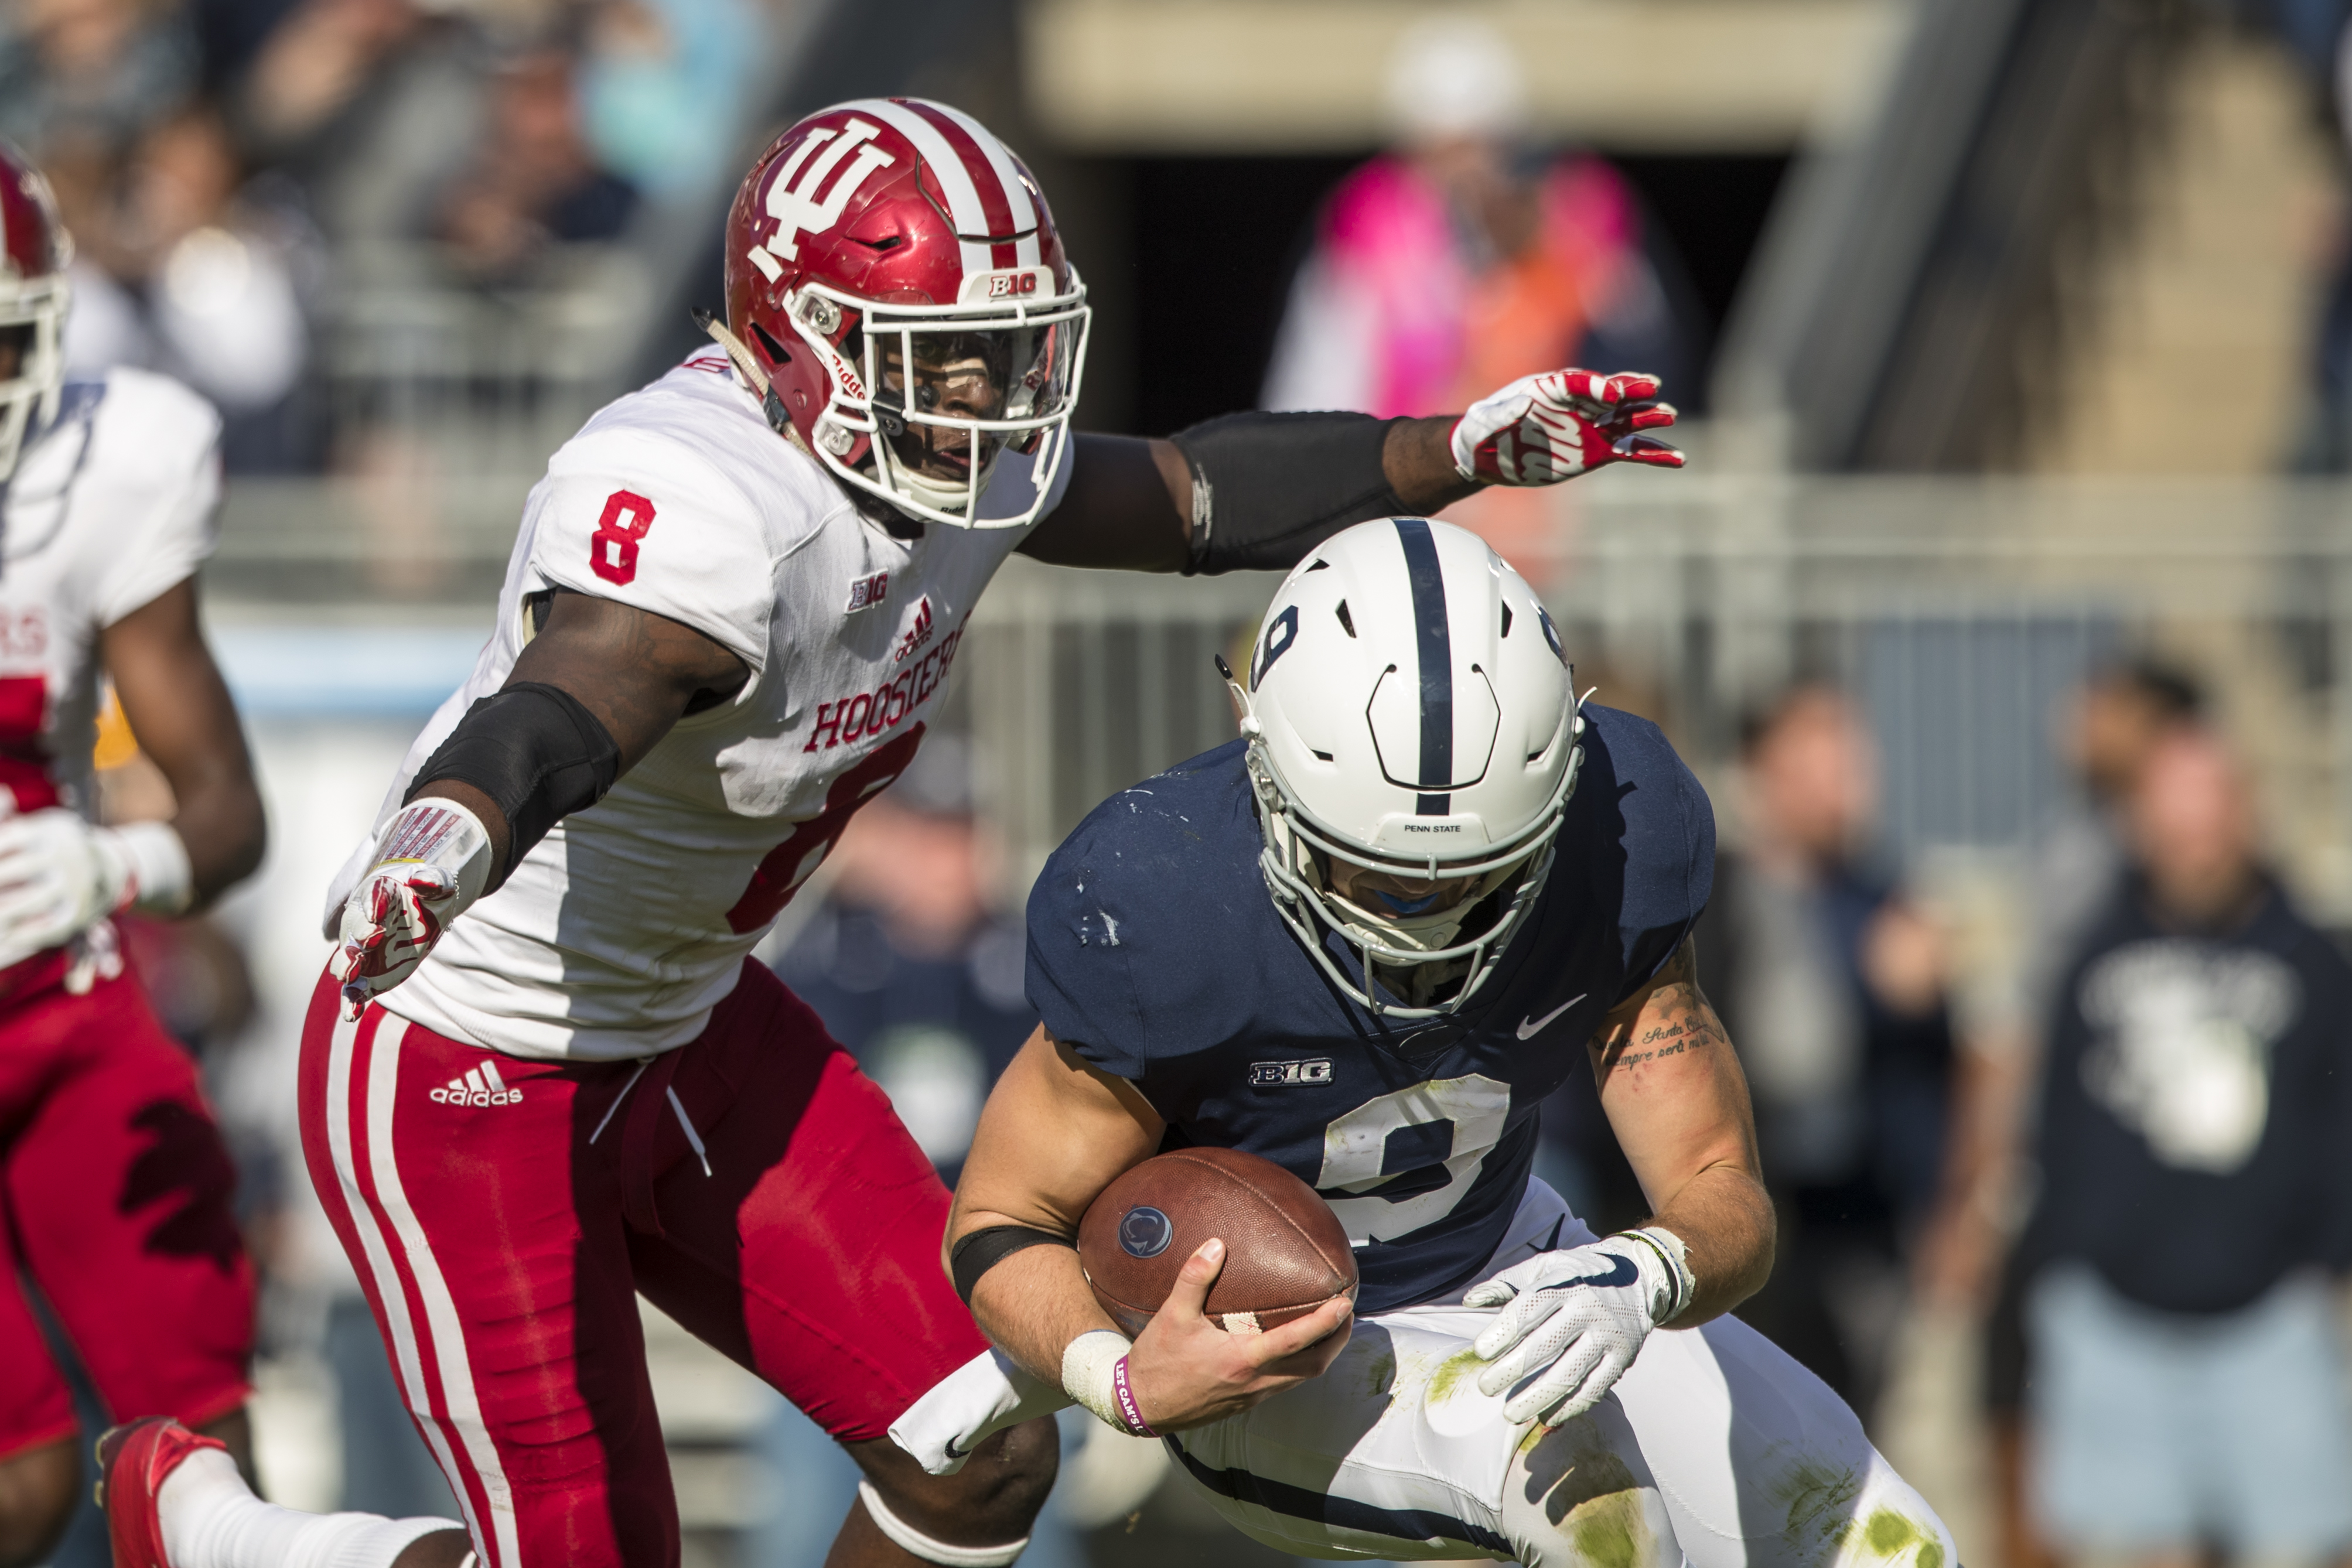 Indiana LB Tegray Scales hunts down Penn St. QB Trace McSorley, September 30, 2017.